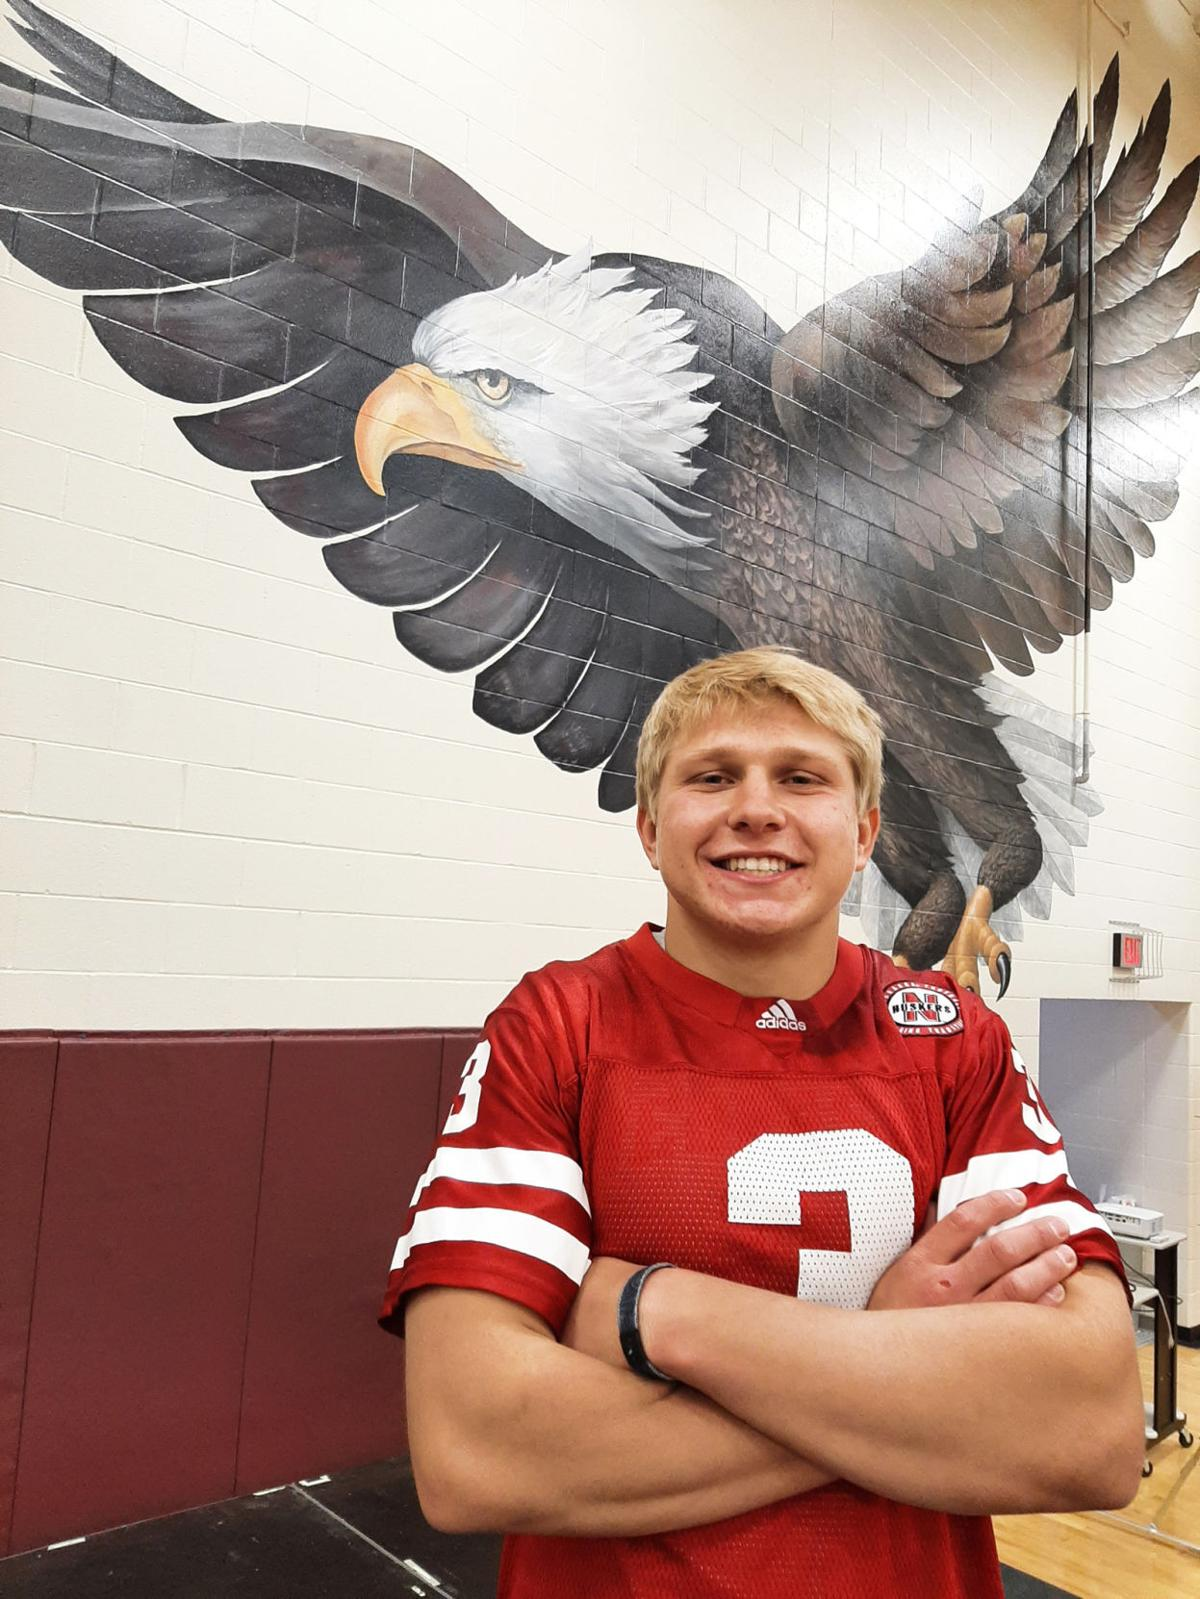 Arlington student with eagle vertical